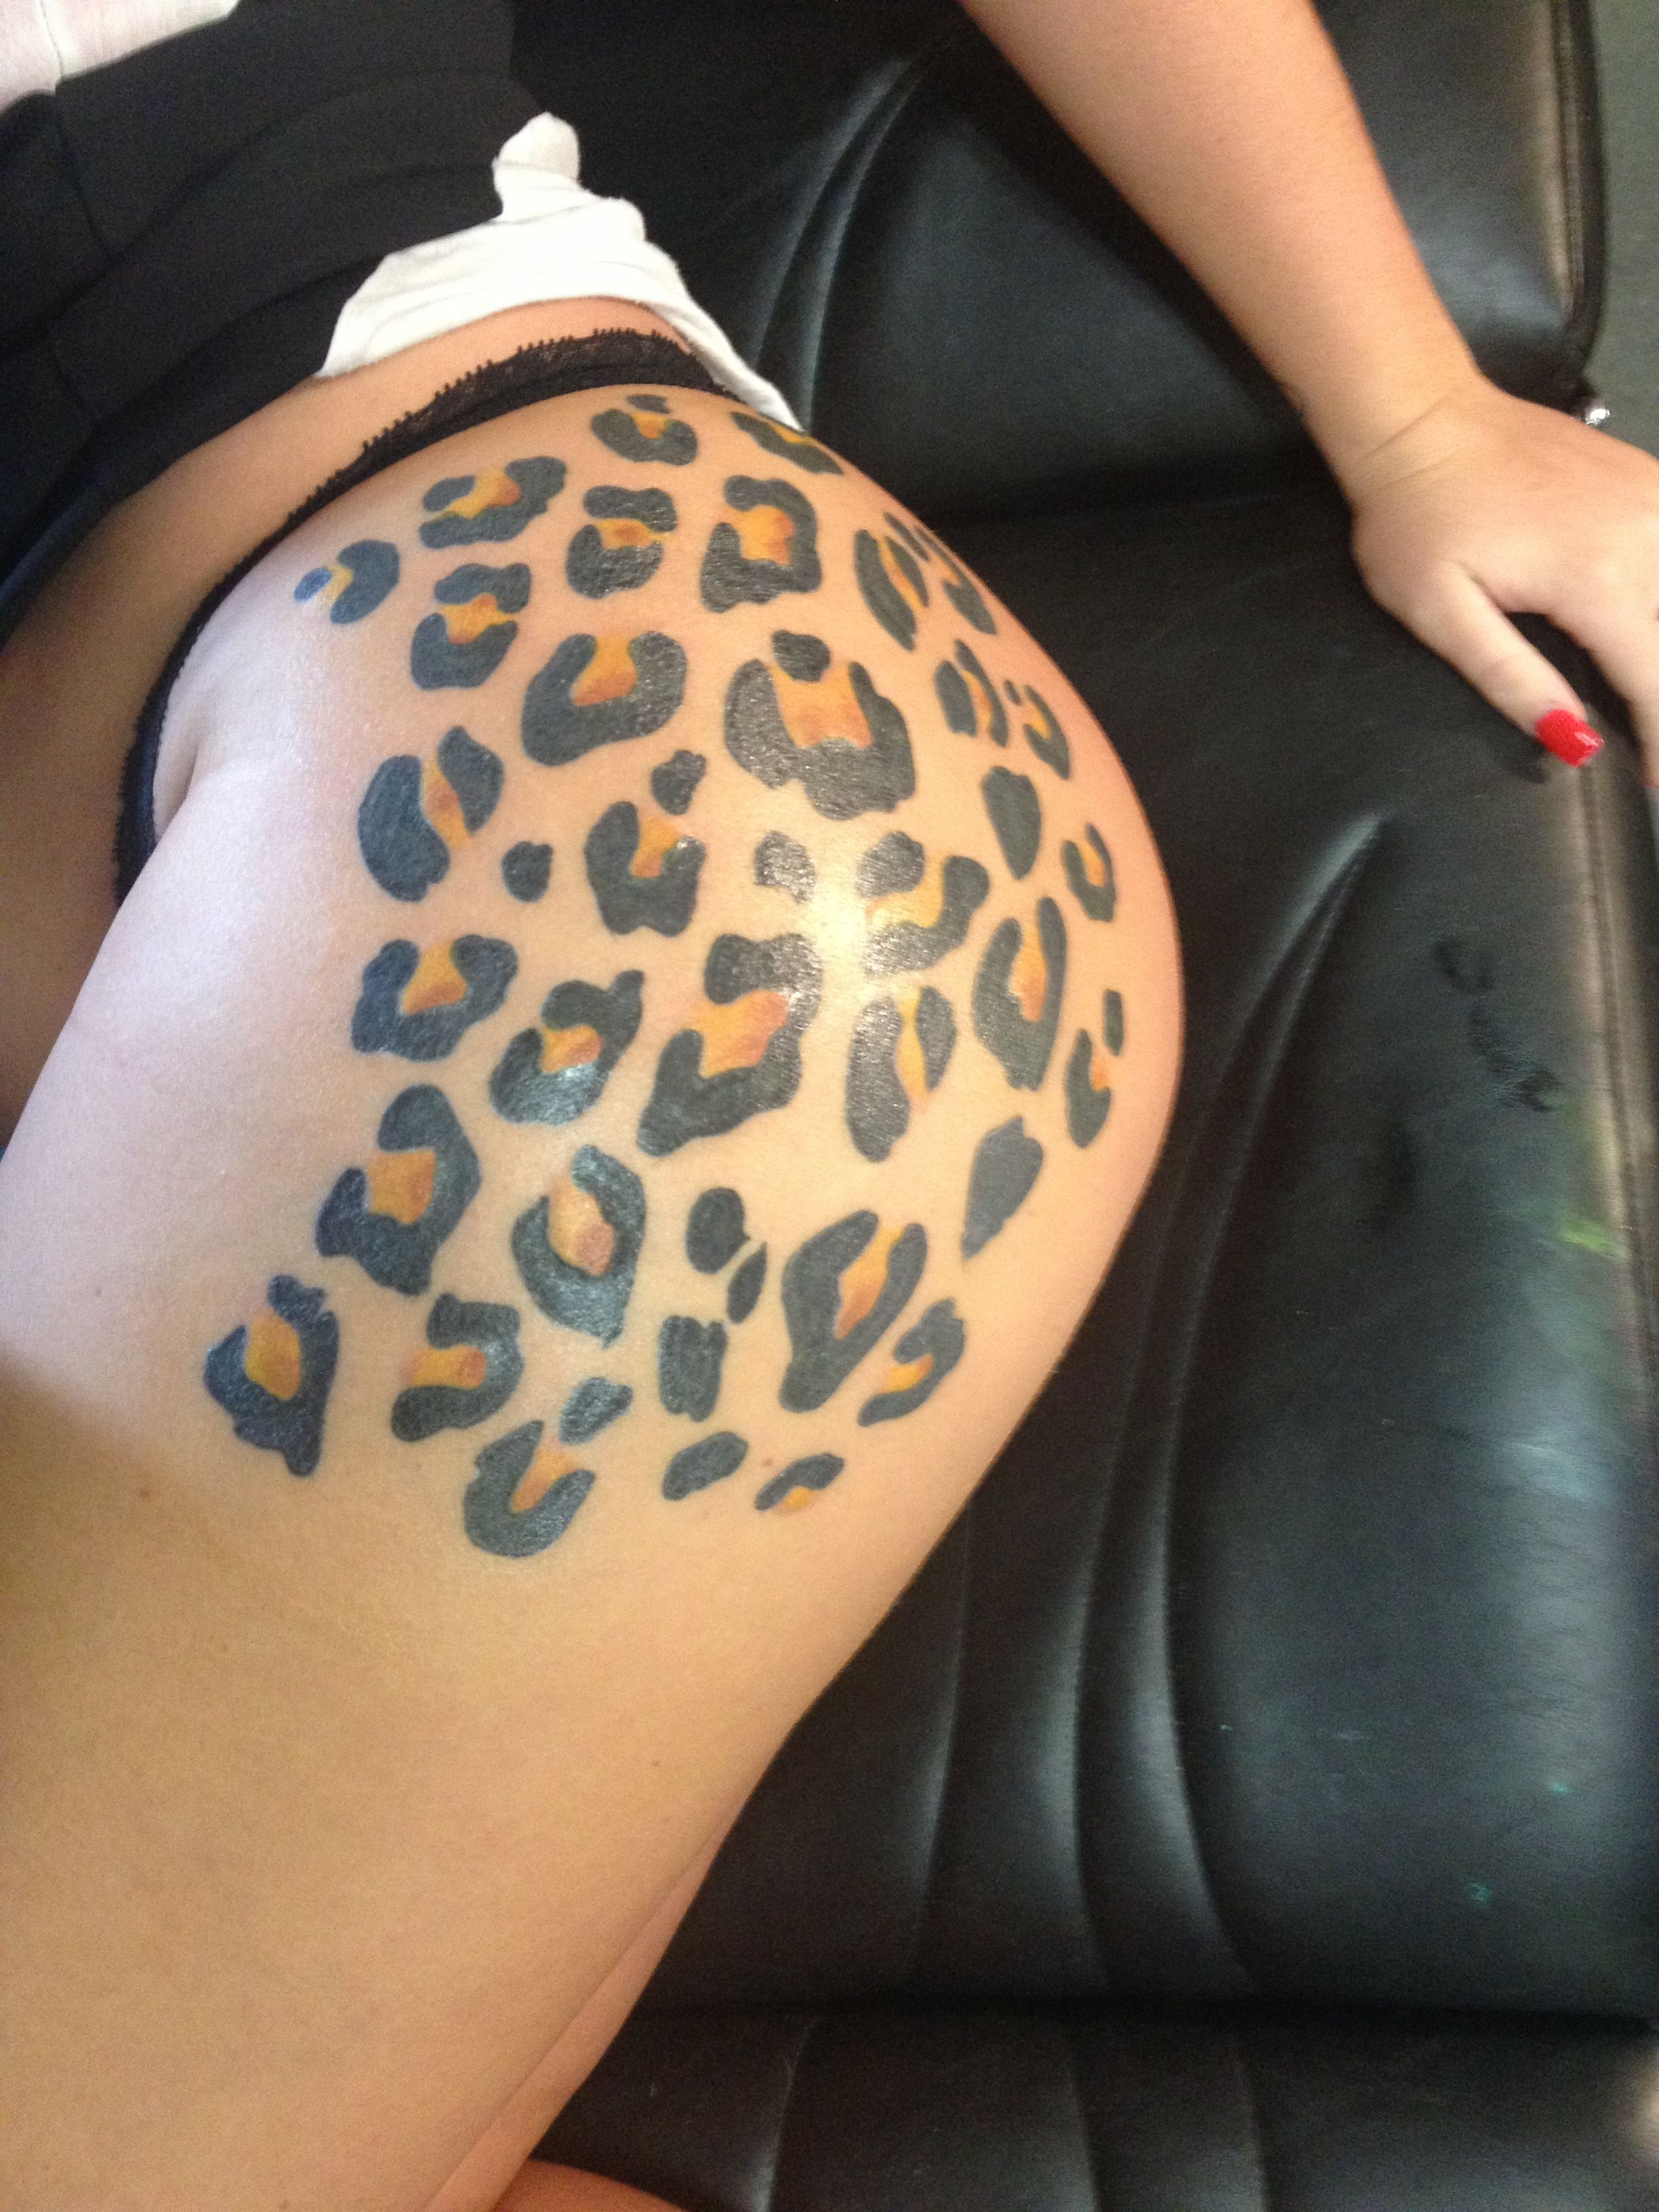 Cheetah print tattoo | Tattoos.! | Cheetah print tattoos ...